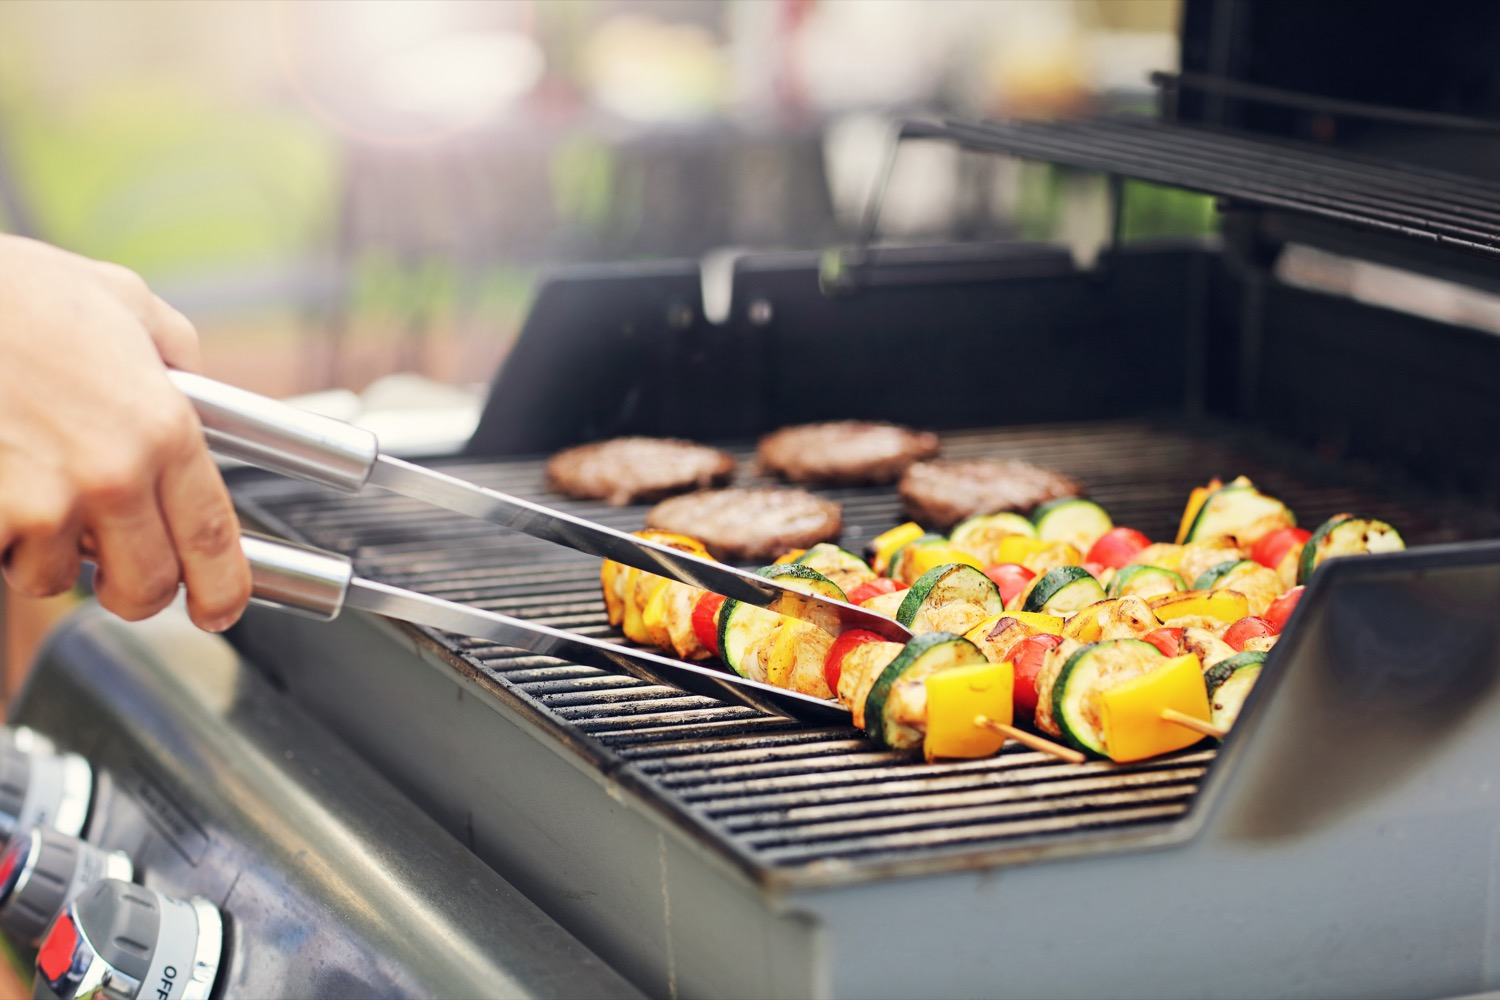 Barbequing vegetable kabobs and burgers on a propane grill.